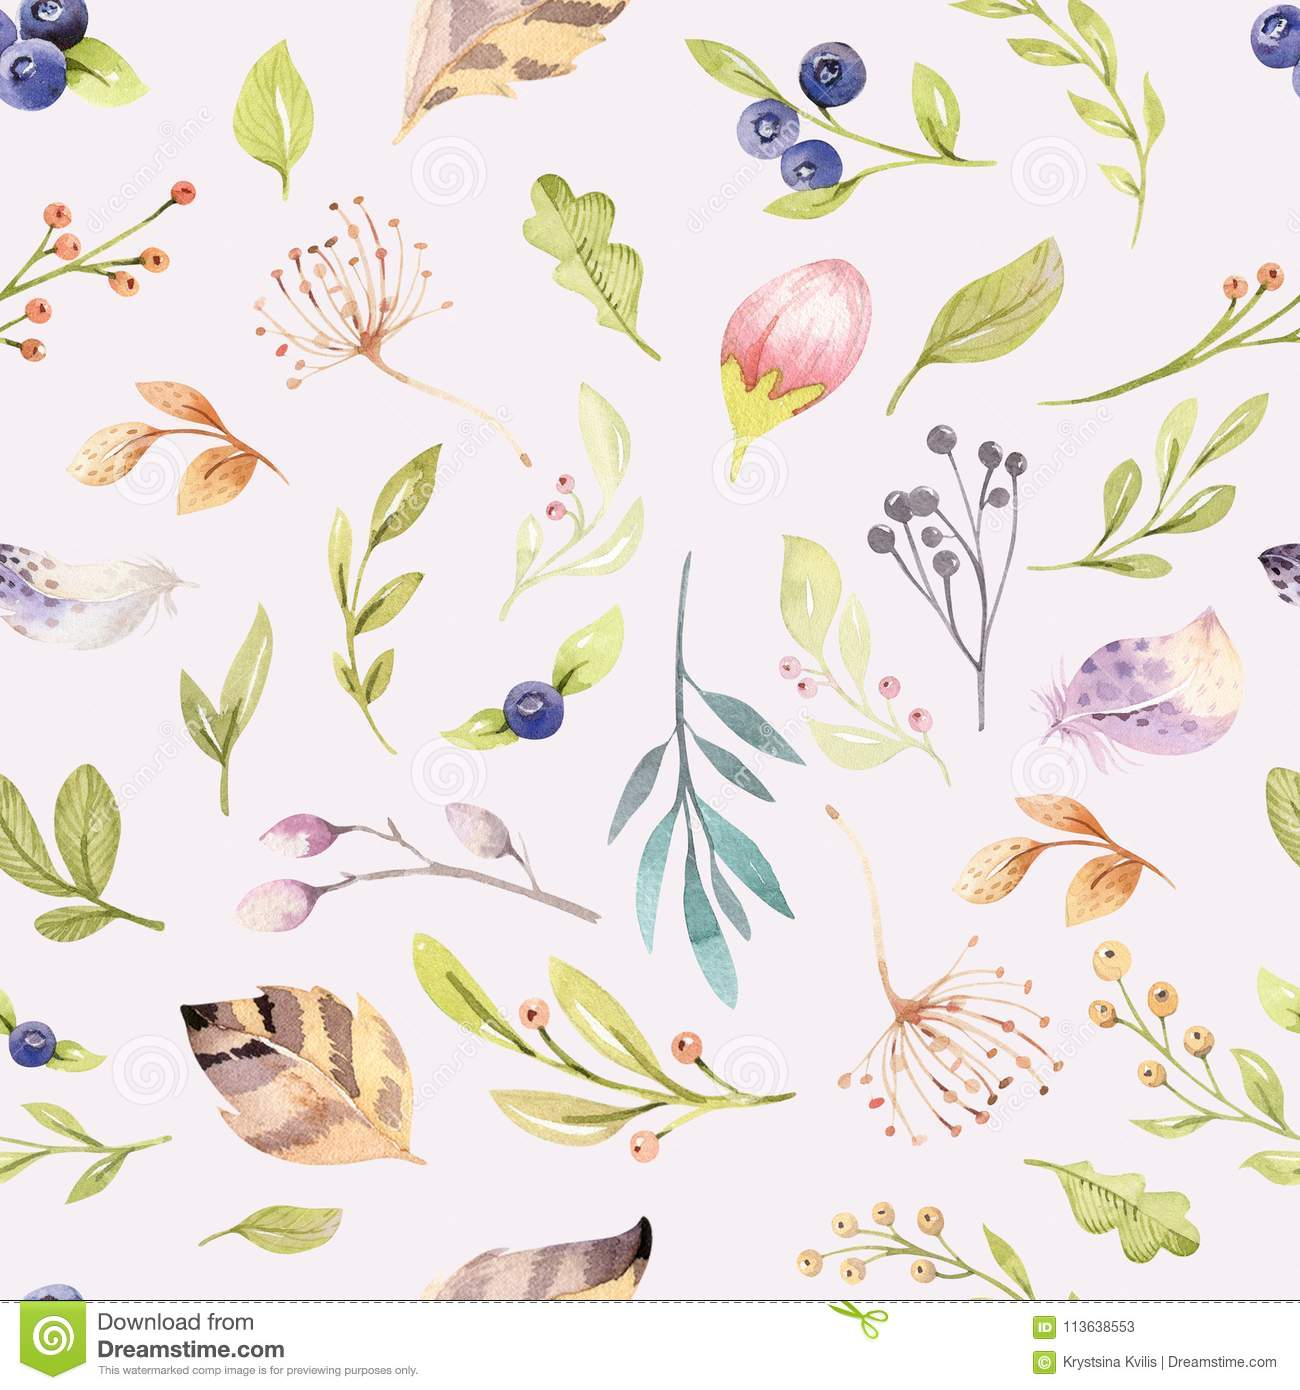 Download Watercolor Floral Bloom Seamless Pattern In Pastel Colors Background With Bloossom Flower And